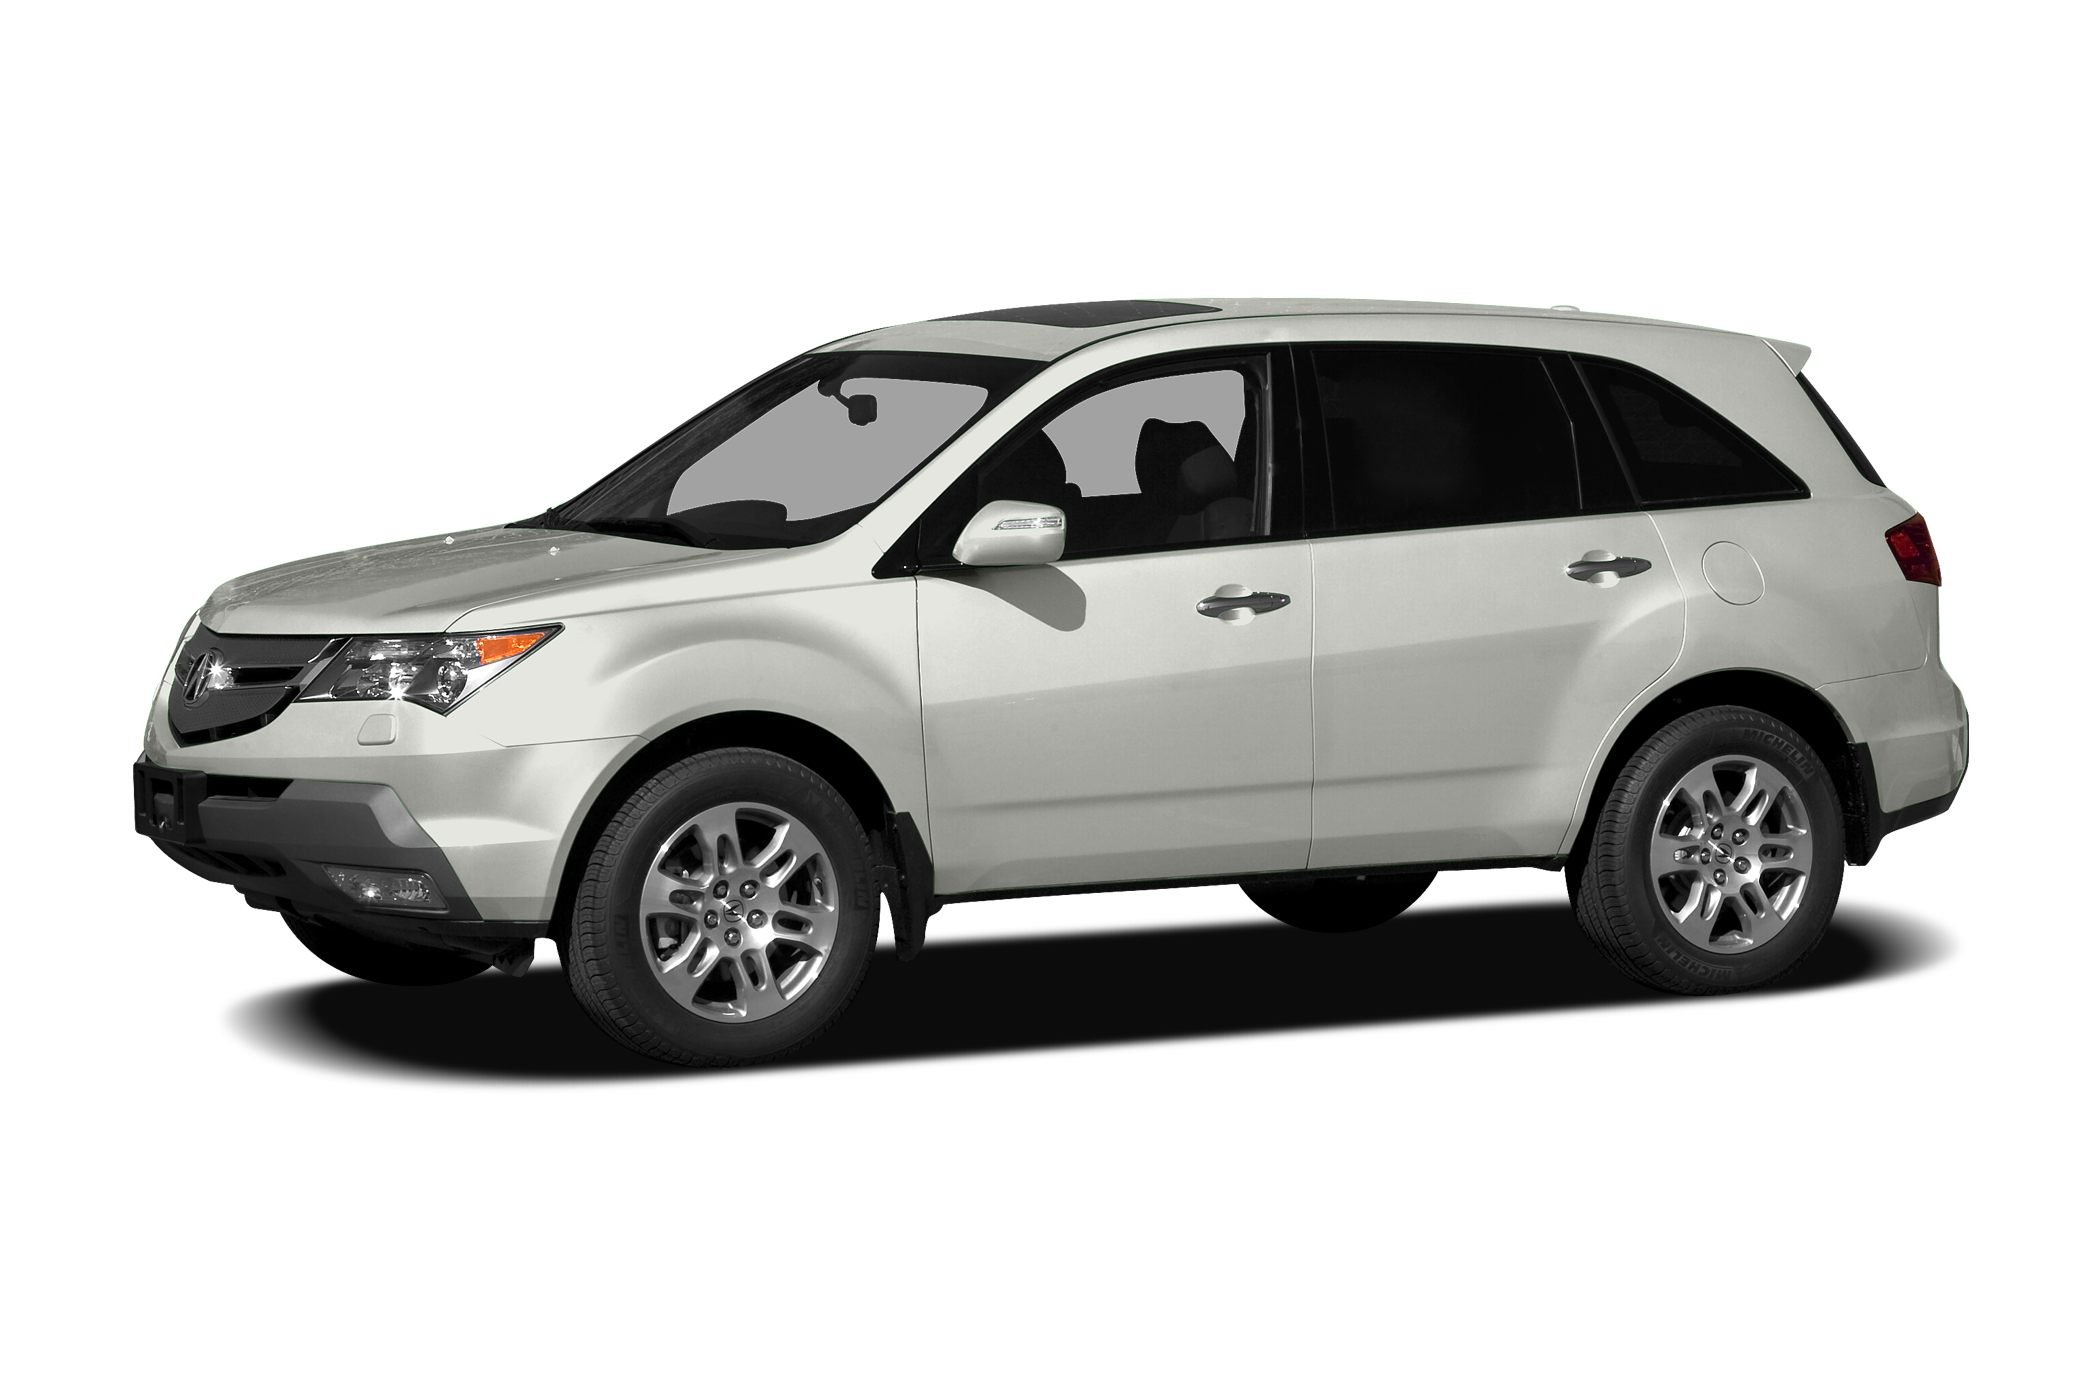 2008 Acura MDX 37  WHEN IT COMES TO EXCELLENCE IN USED CAR SALES YOU KNOW YOURE AT STAR AUTO